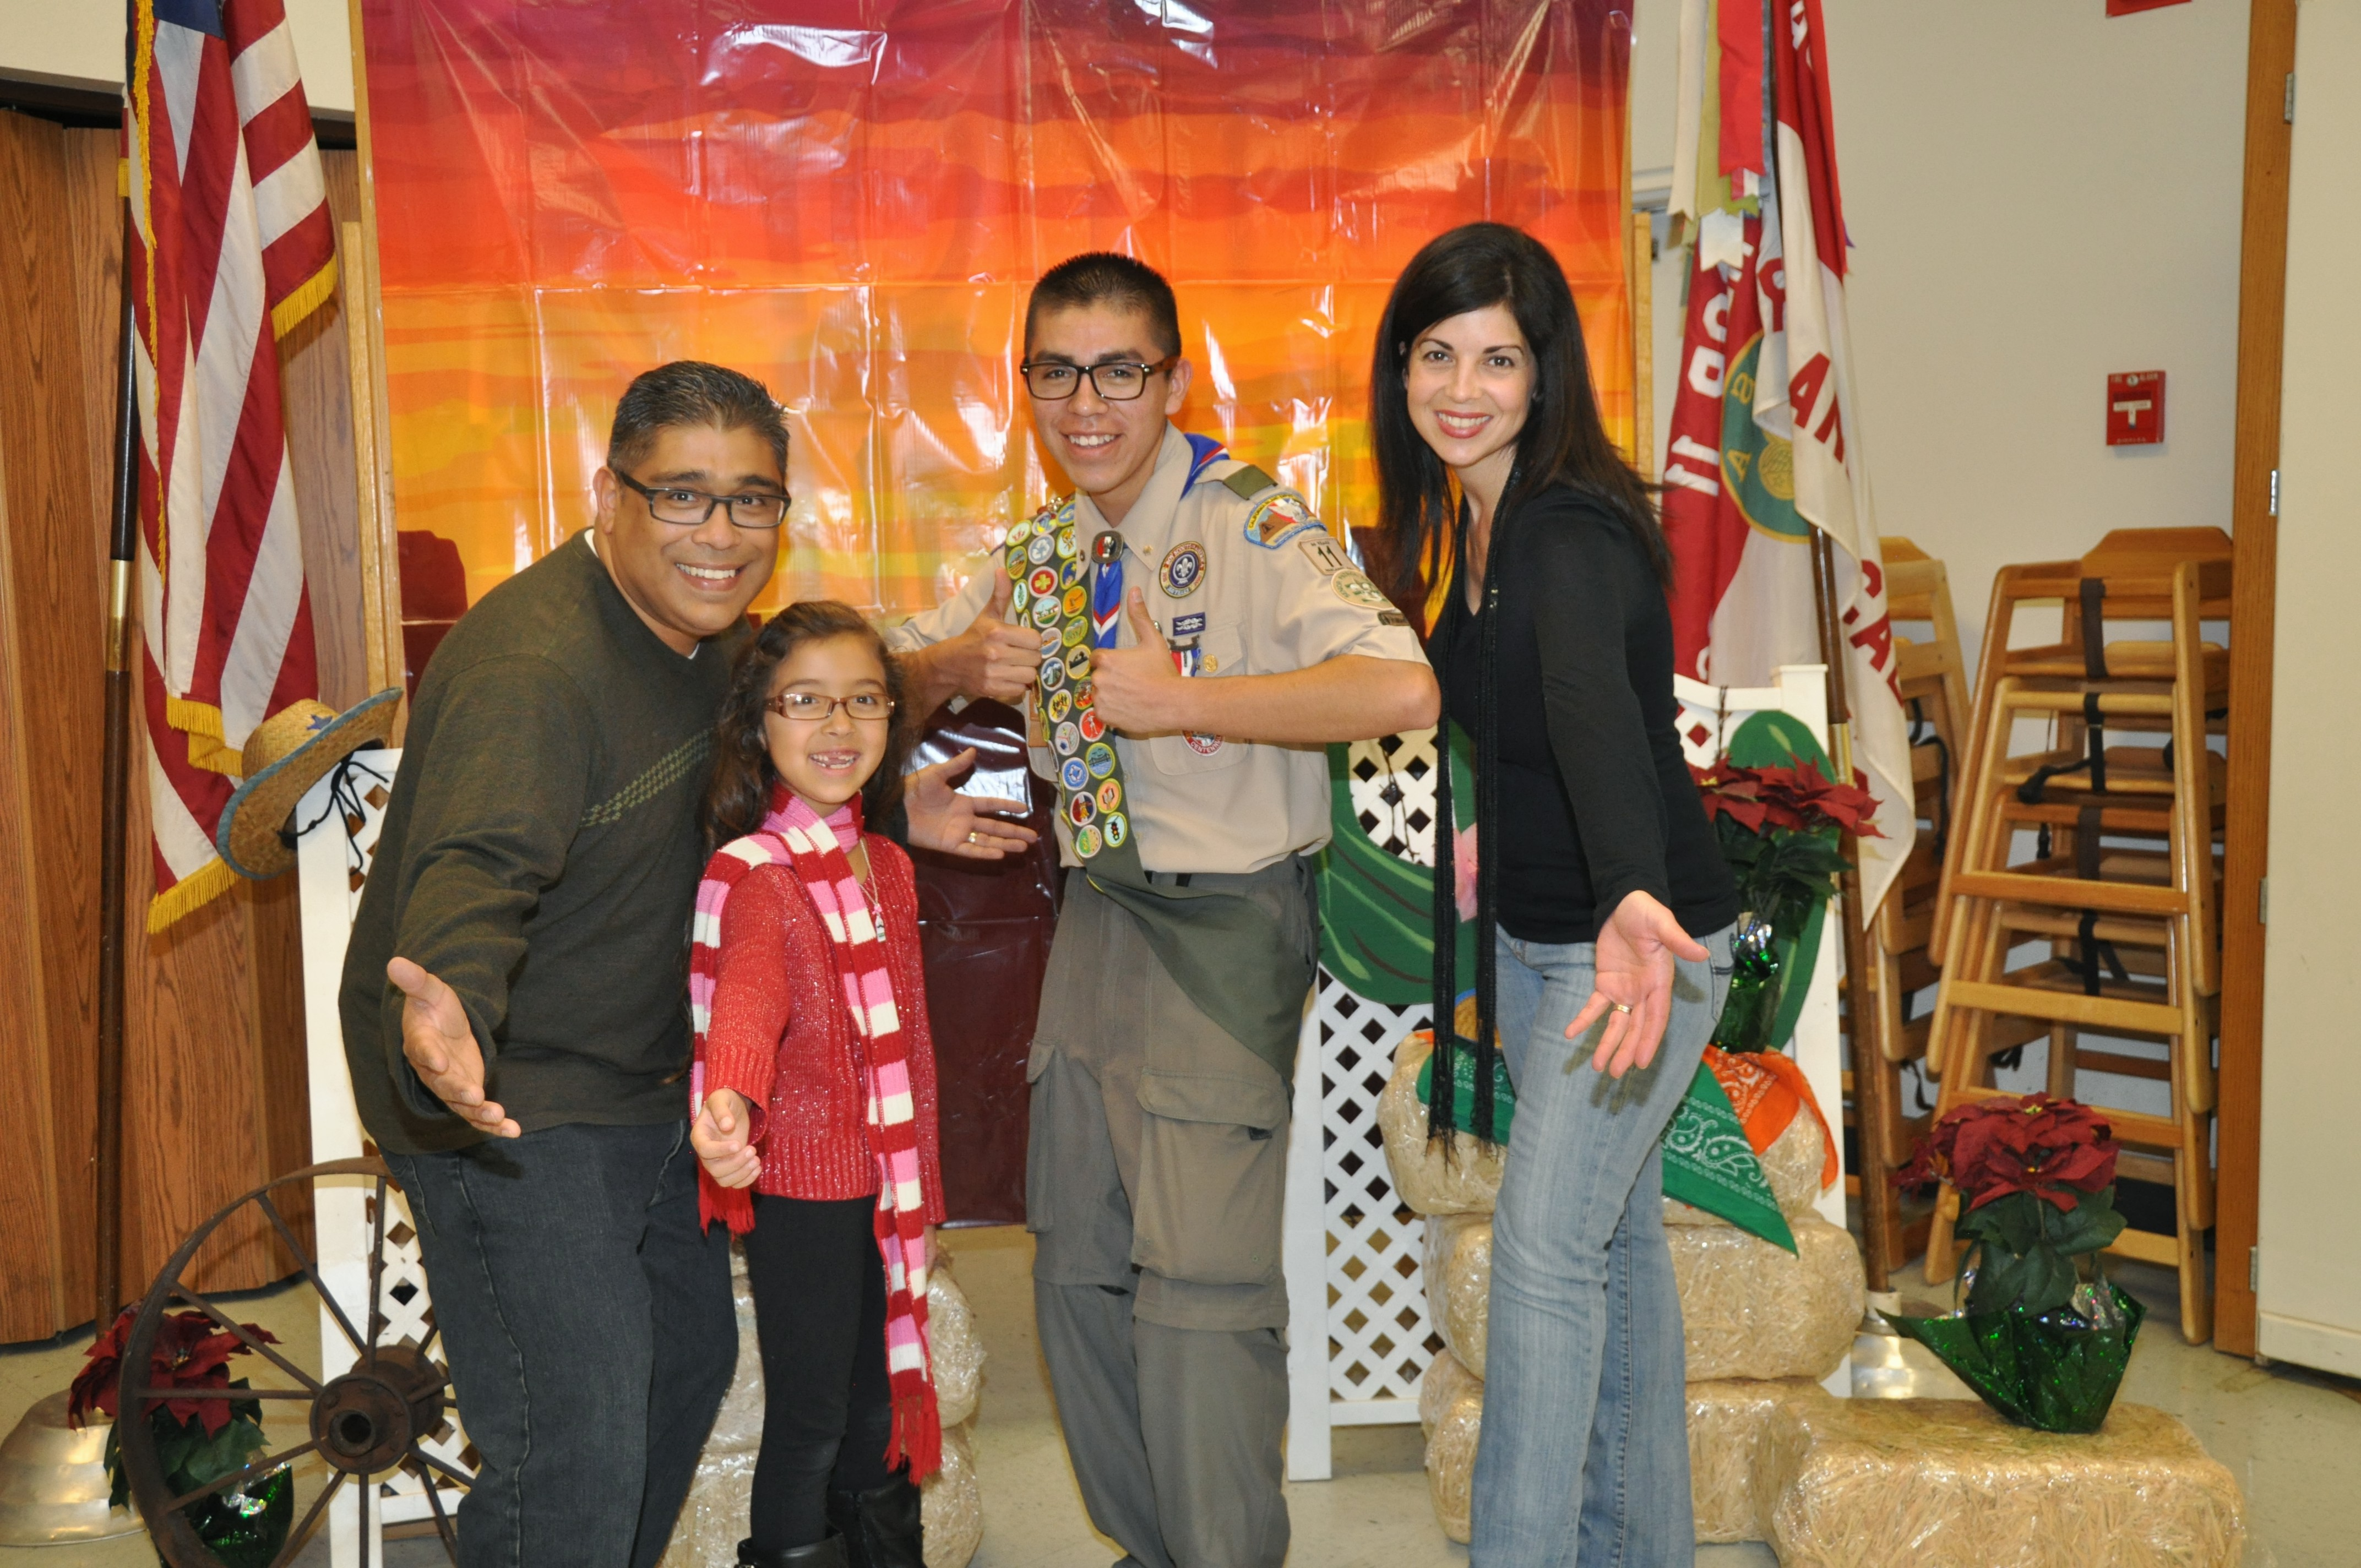 Final family Christmas picture as a Boy Scout.